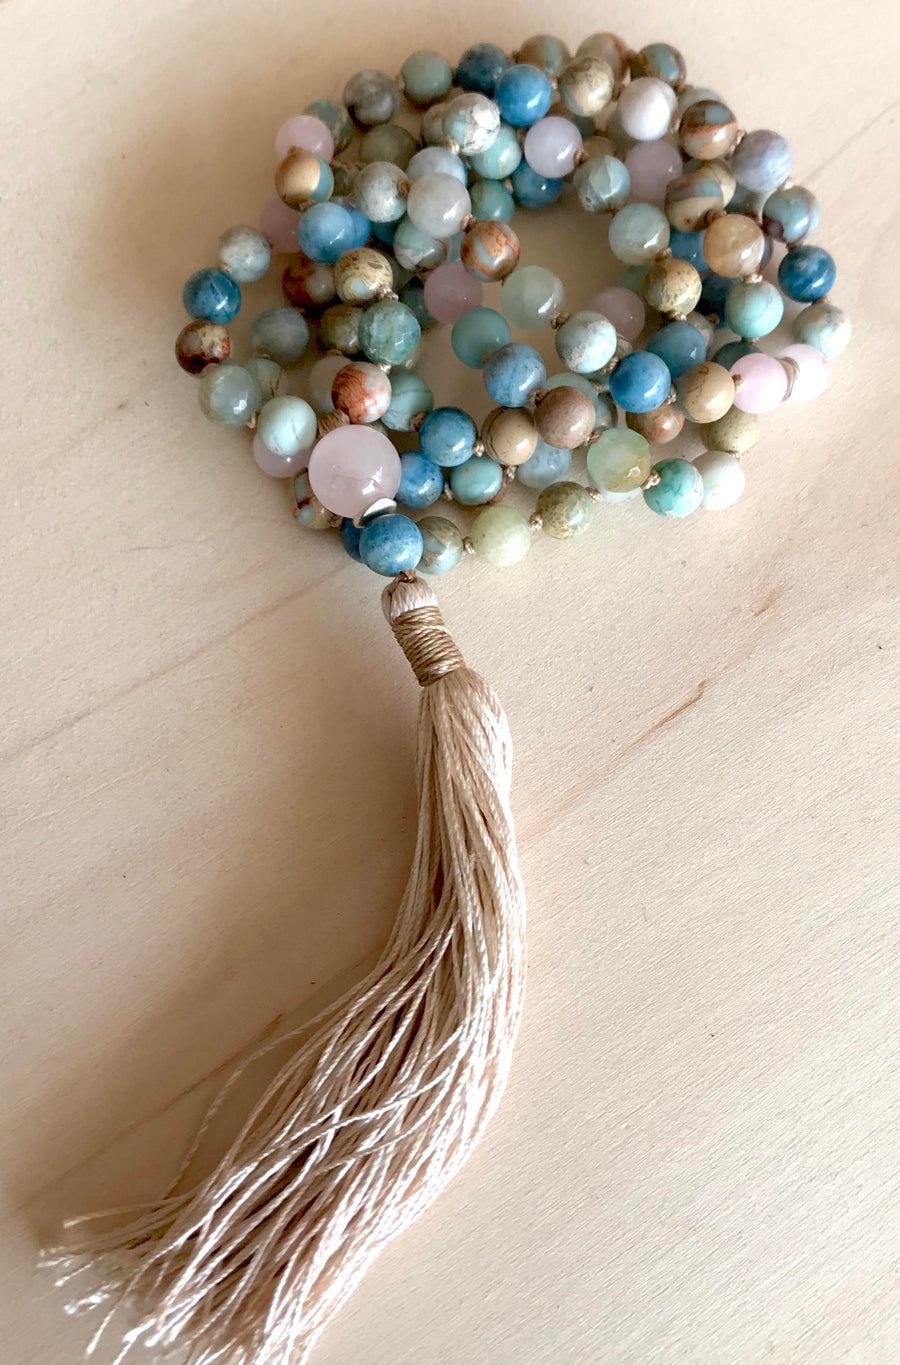 YOGA JEWELRY 108 Mala Beads Meditation Beads Aquamarine Necklace African Opal Rose Quartz Healing Gemstones